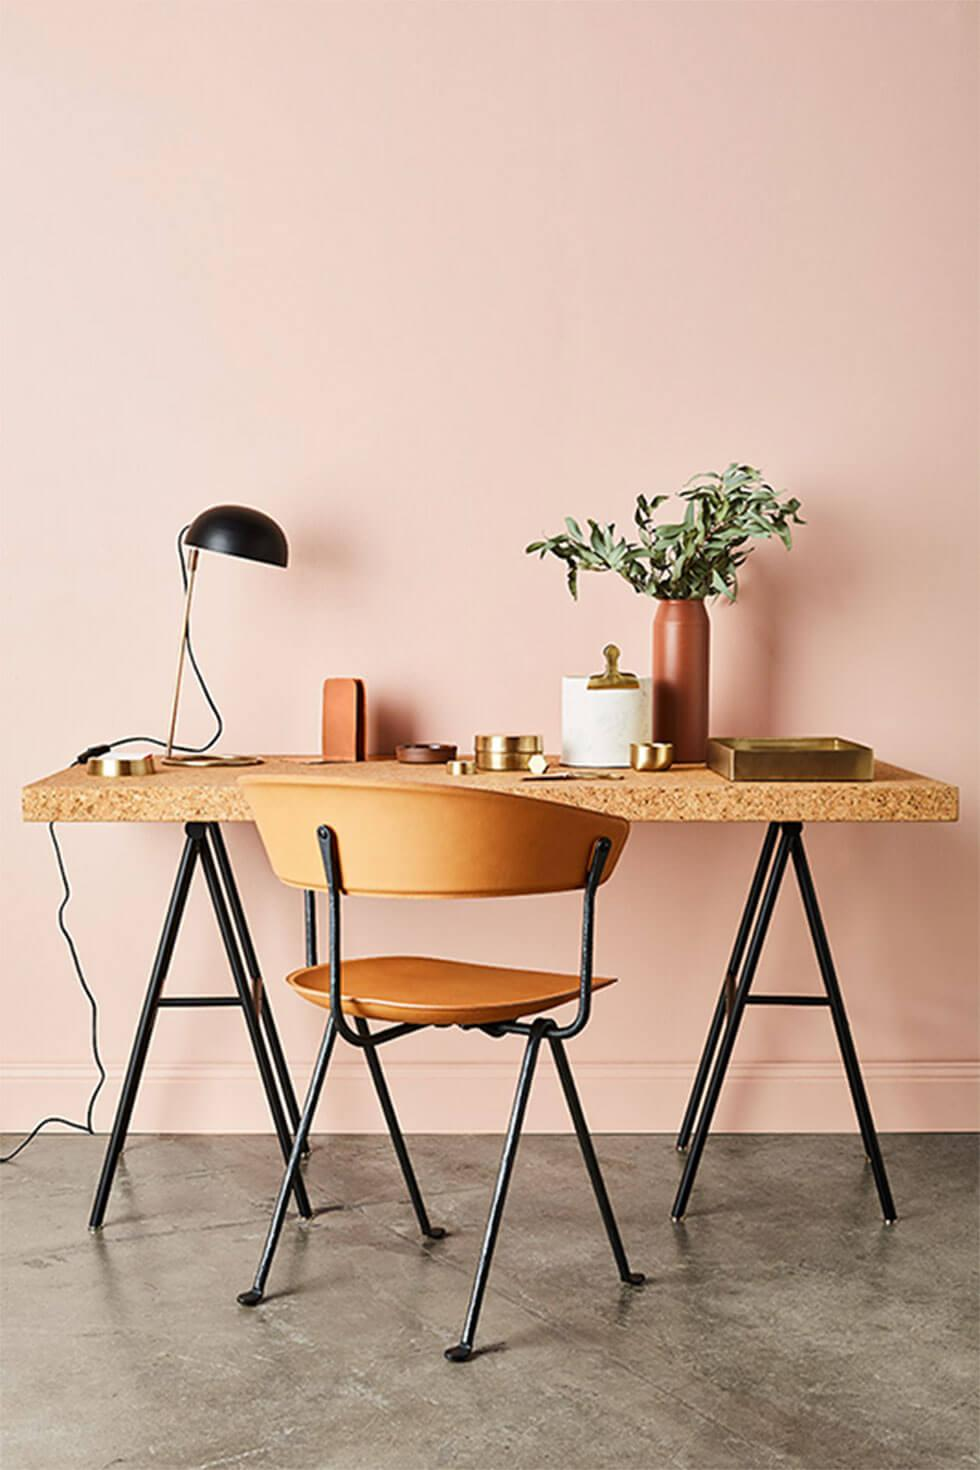 Nordic design inspired home office with dusty pink walls, wooden chair and desk with brass accents.